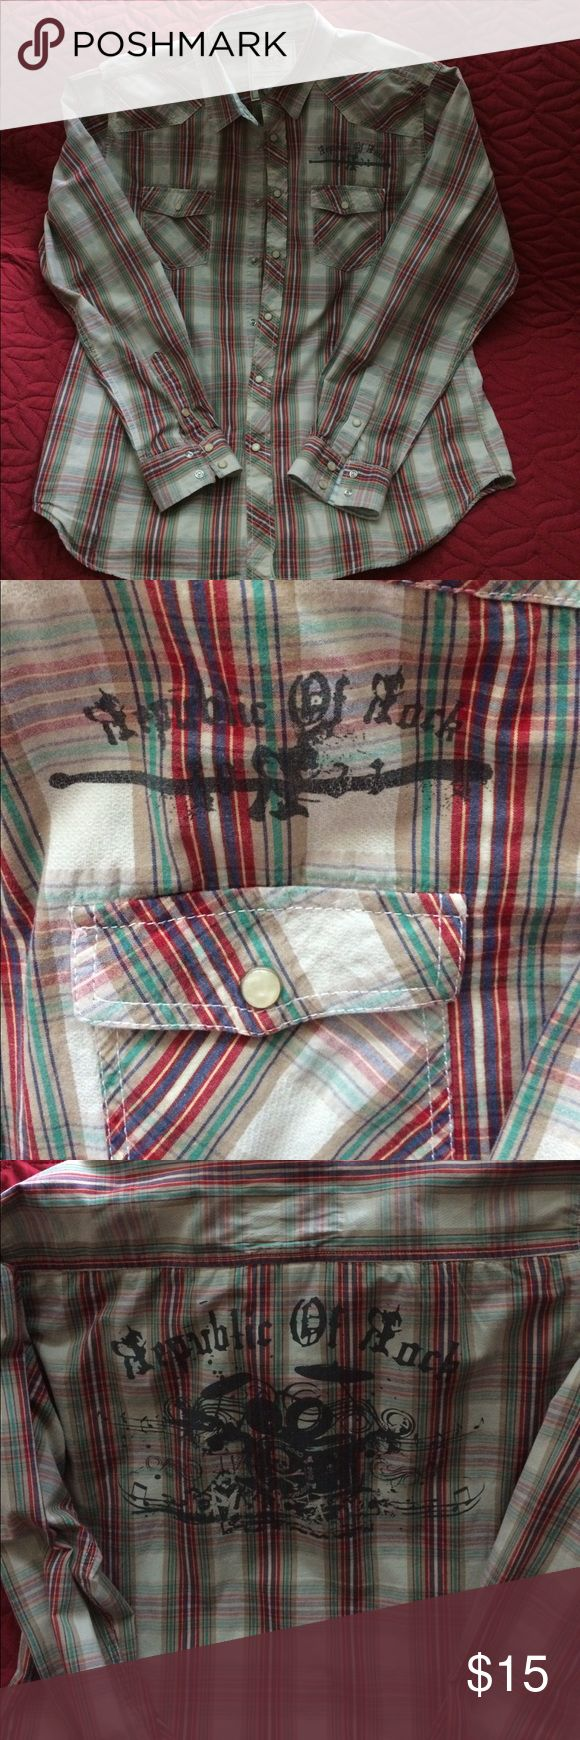 Men's Republic of Rock Red Camel Shirt This shirt has western cut styling with snaps instead of buttons. The basic color is a light khaki, but the plaid stripes are multi-colored.    Perfect condition! Red Camel Shirts Casual Button Down Shirts